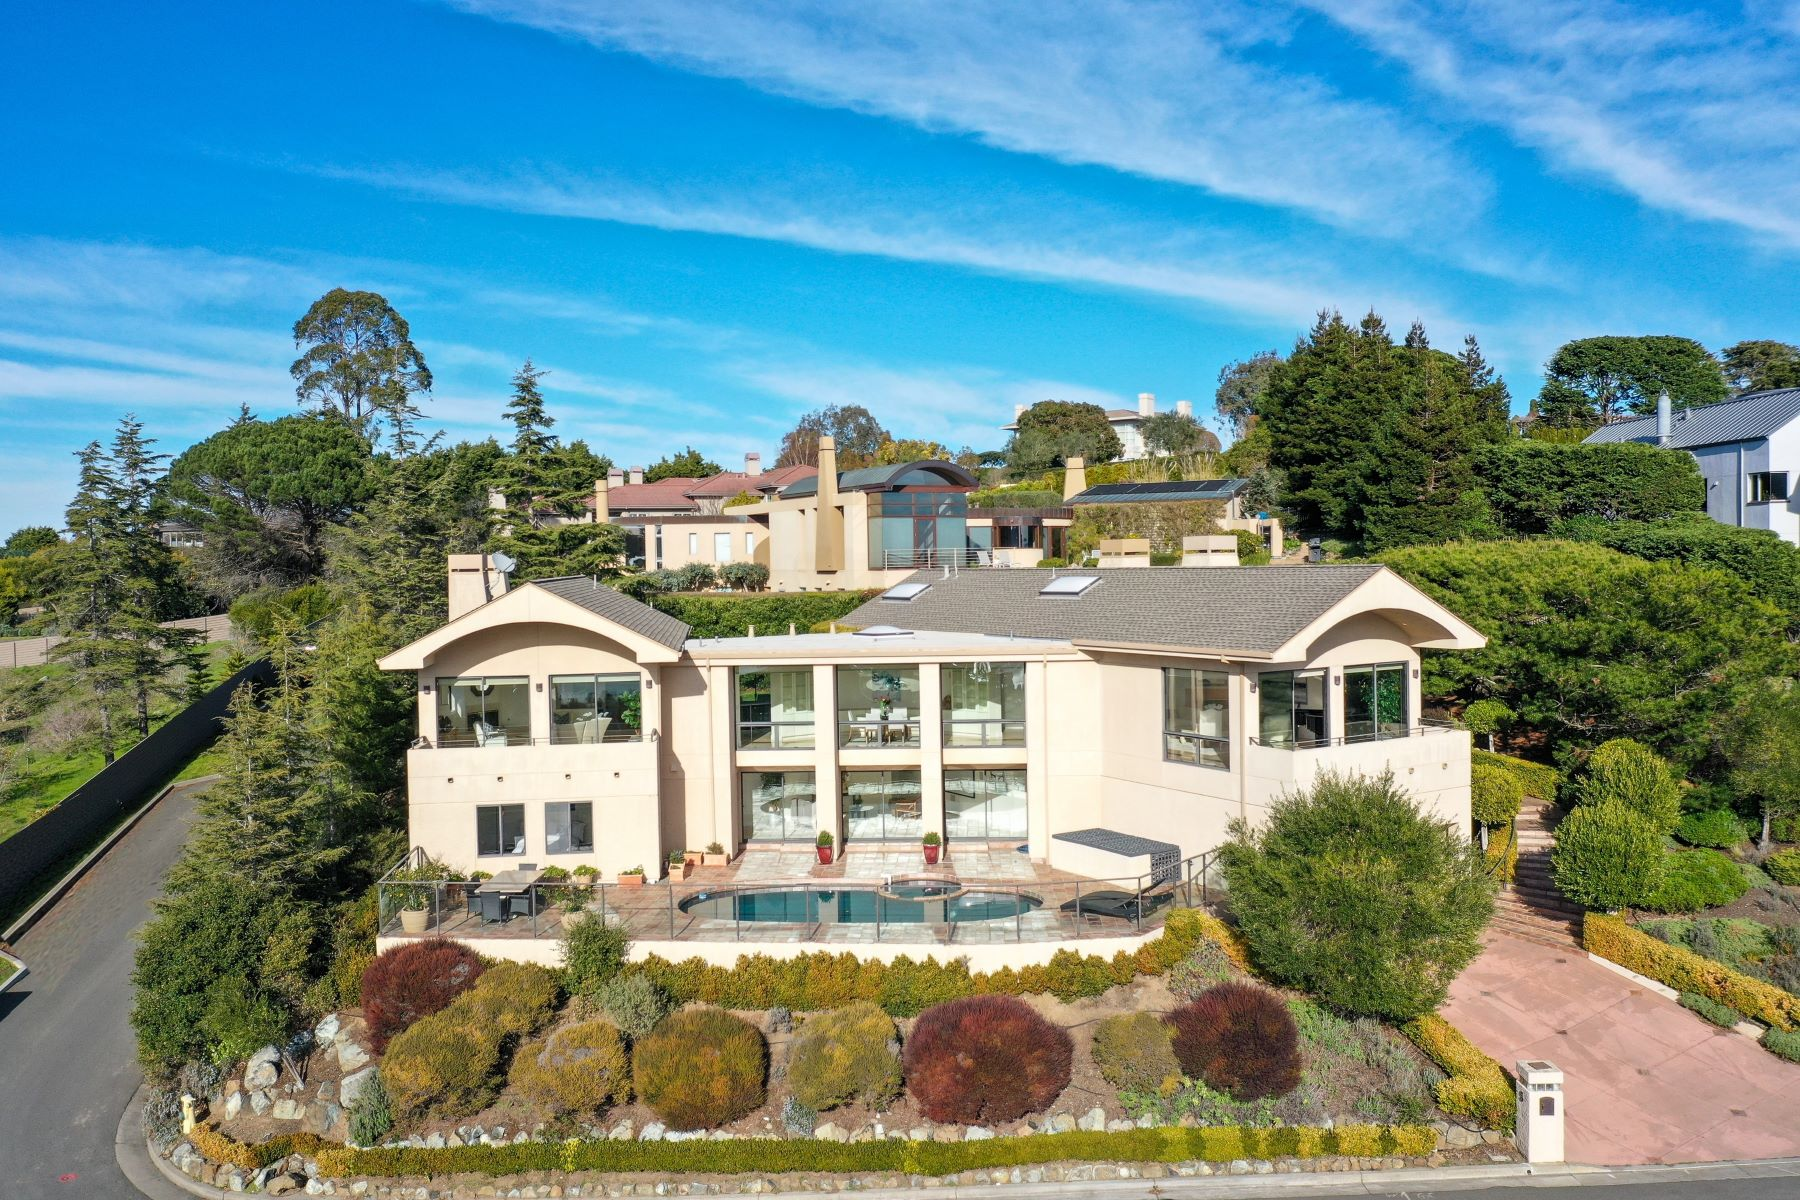 Property for Sale at Hilltop Contemporary! 5 Gilmartin Ct, Tiburon, California 94920 United States